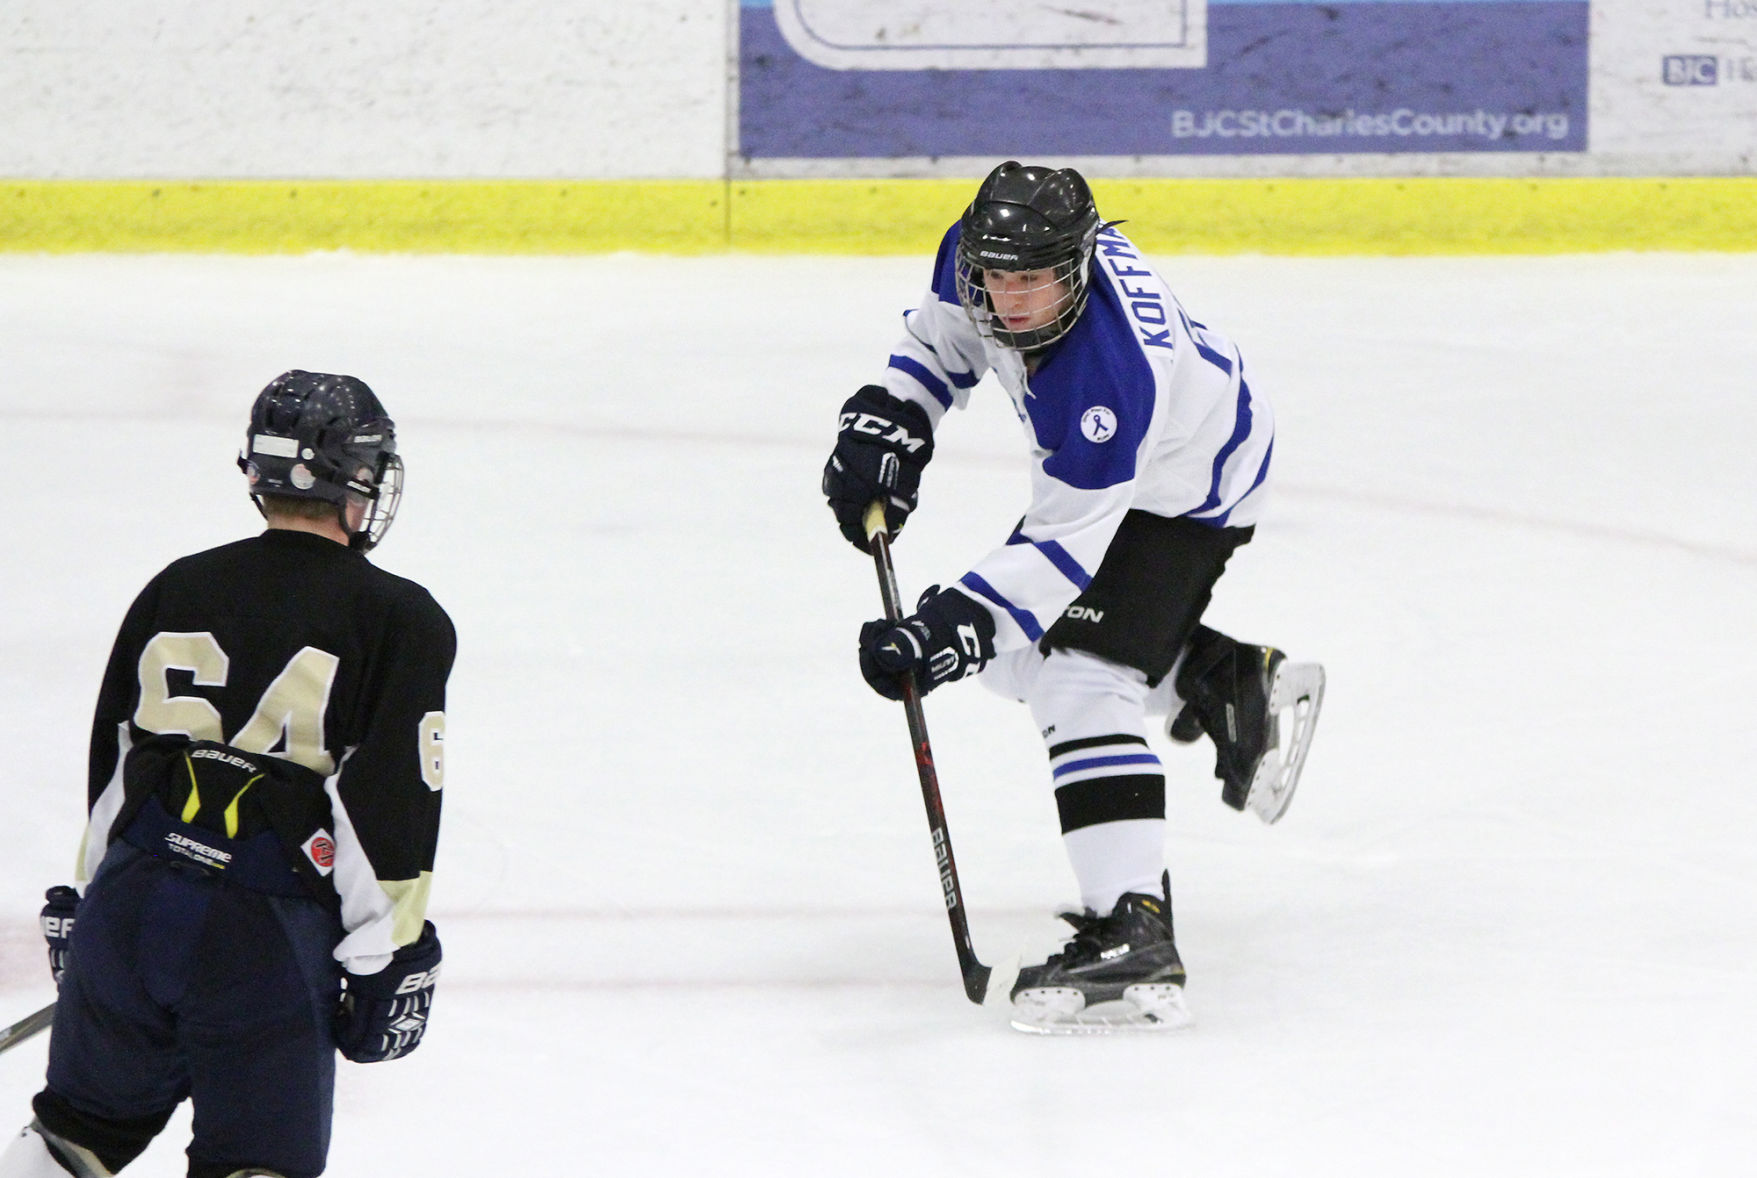 Duchesne High School Ice Hockey Duchesne Vs Fort Zumwalt East High School Hockey Stltoday